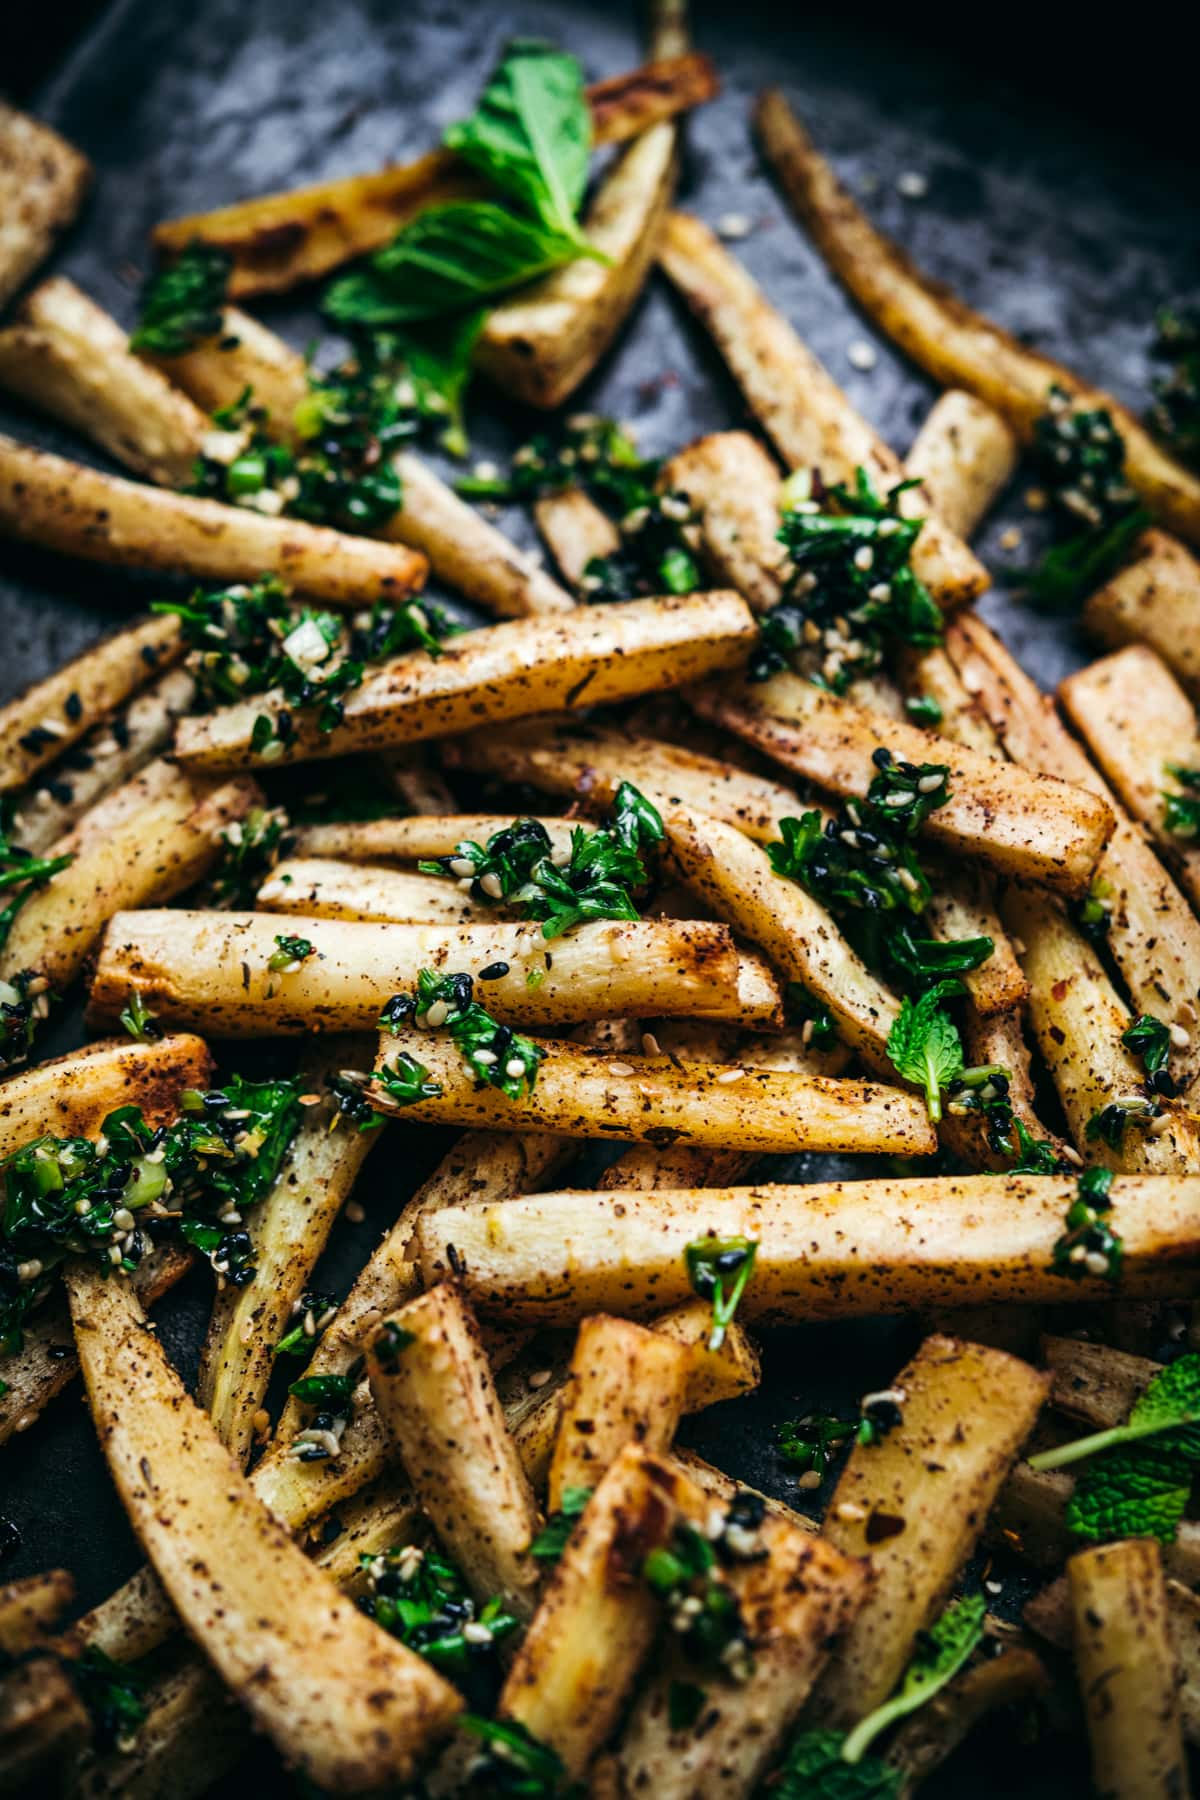 close up view of roasted parsnips on a sheet pan with za'atar gremolata on top.